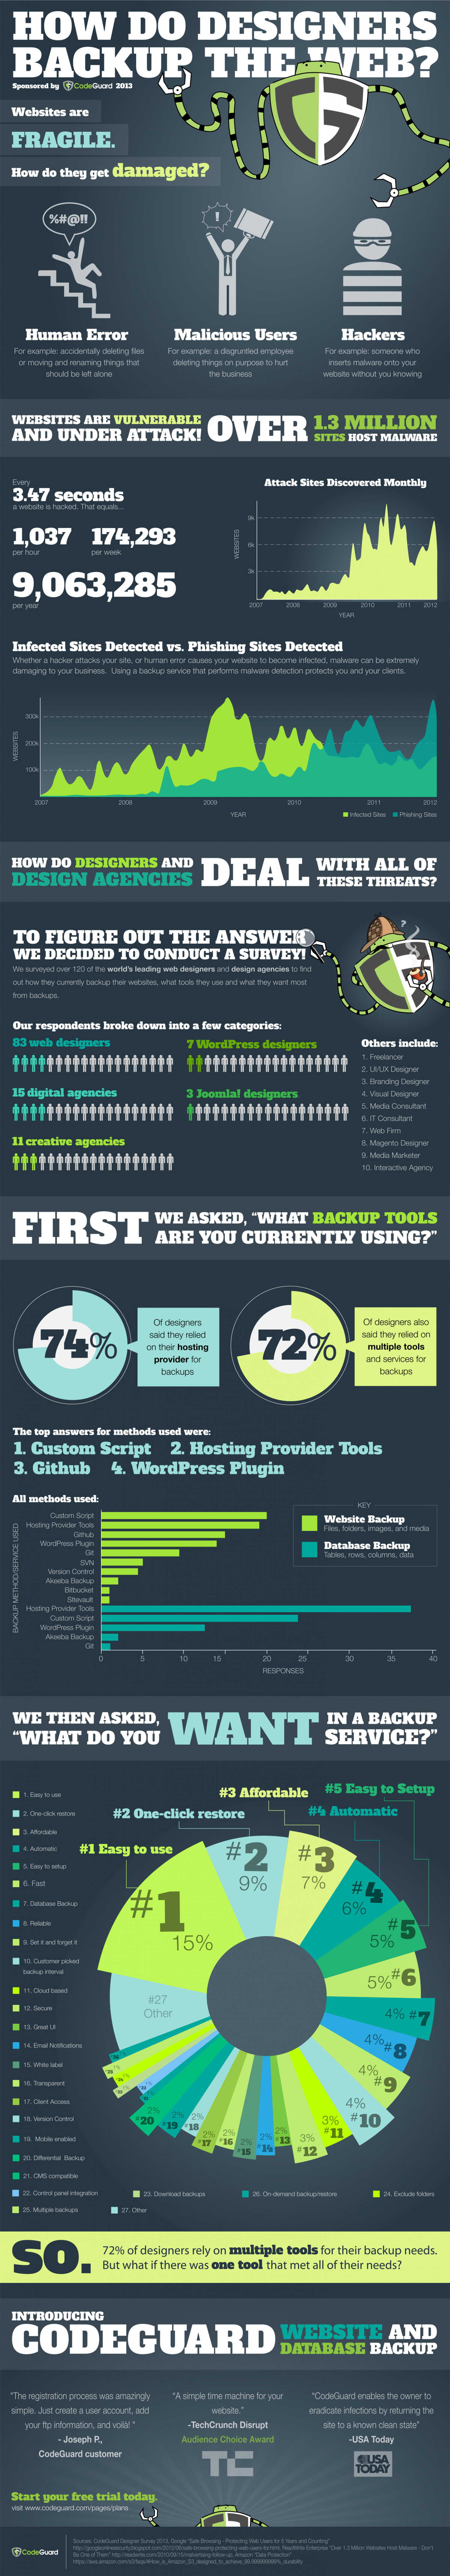 How Web Designers and Developers Backup Their Sites Infographic